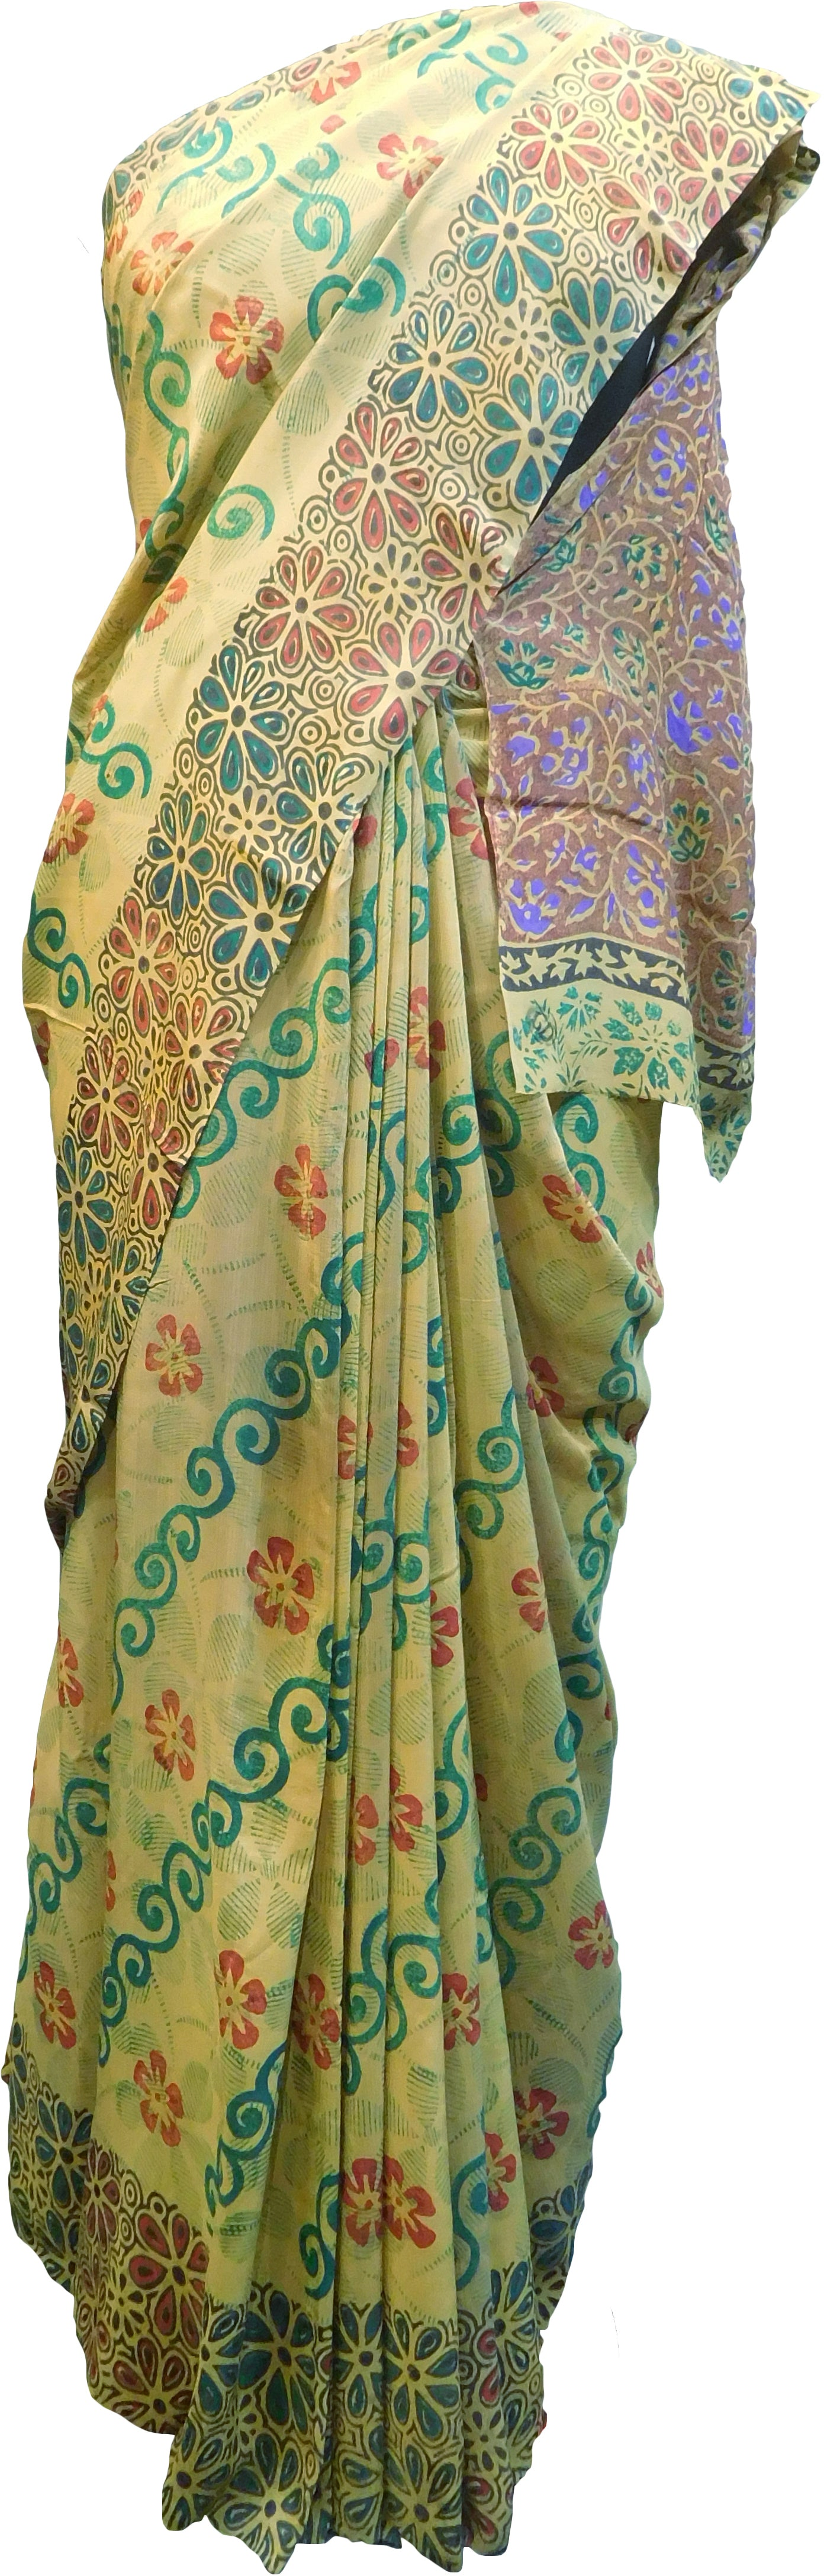 Multicolor Designer Wedding Partywear Pure Crepe Hand Brush Reprinted Kolkata Saree Sari RP267